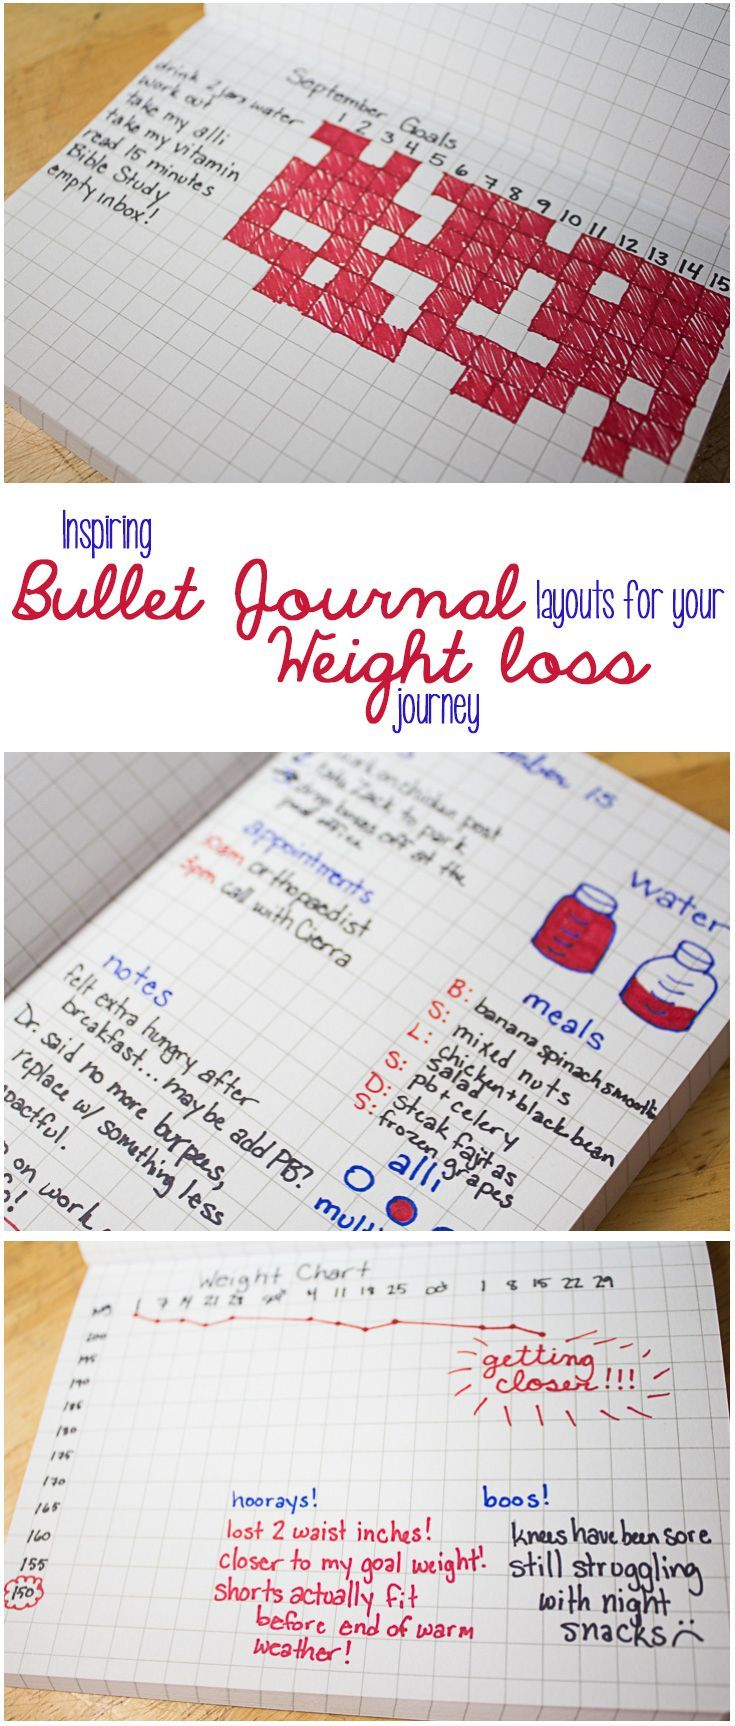 If you love bullet journaling and want to lose weight, here are some layout ideas to get you started on the right path! With a plan, a good bullet journal layout, proper diet and exercise, and a little boost from alli, you'll start seeing results! Plannin